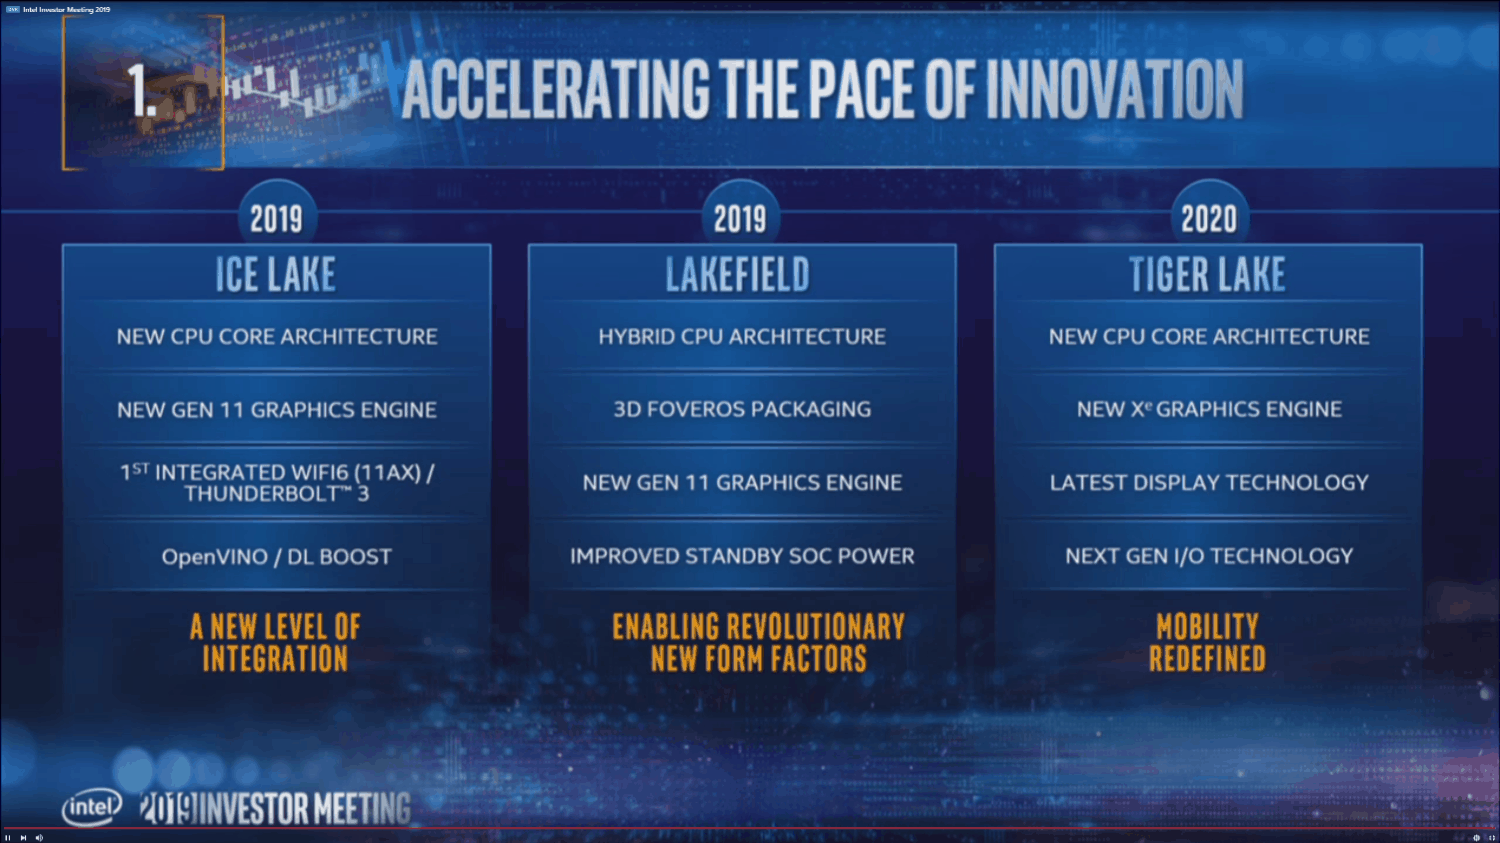 Intel Gen 12 Tiger Lake (Xe) graphics to feature a Display State Buffer engine